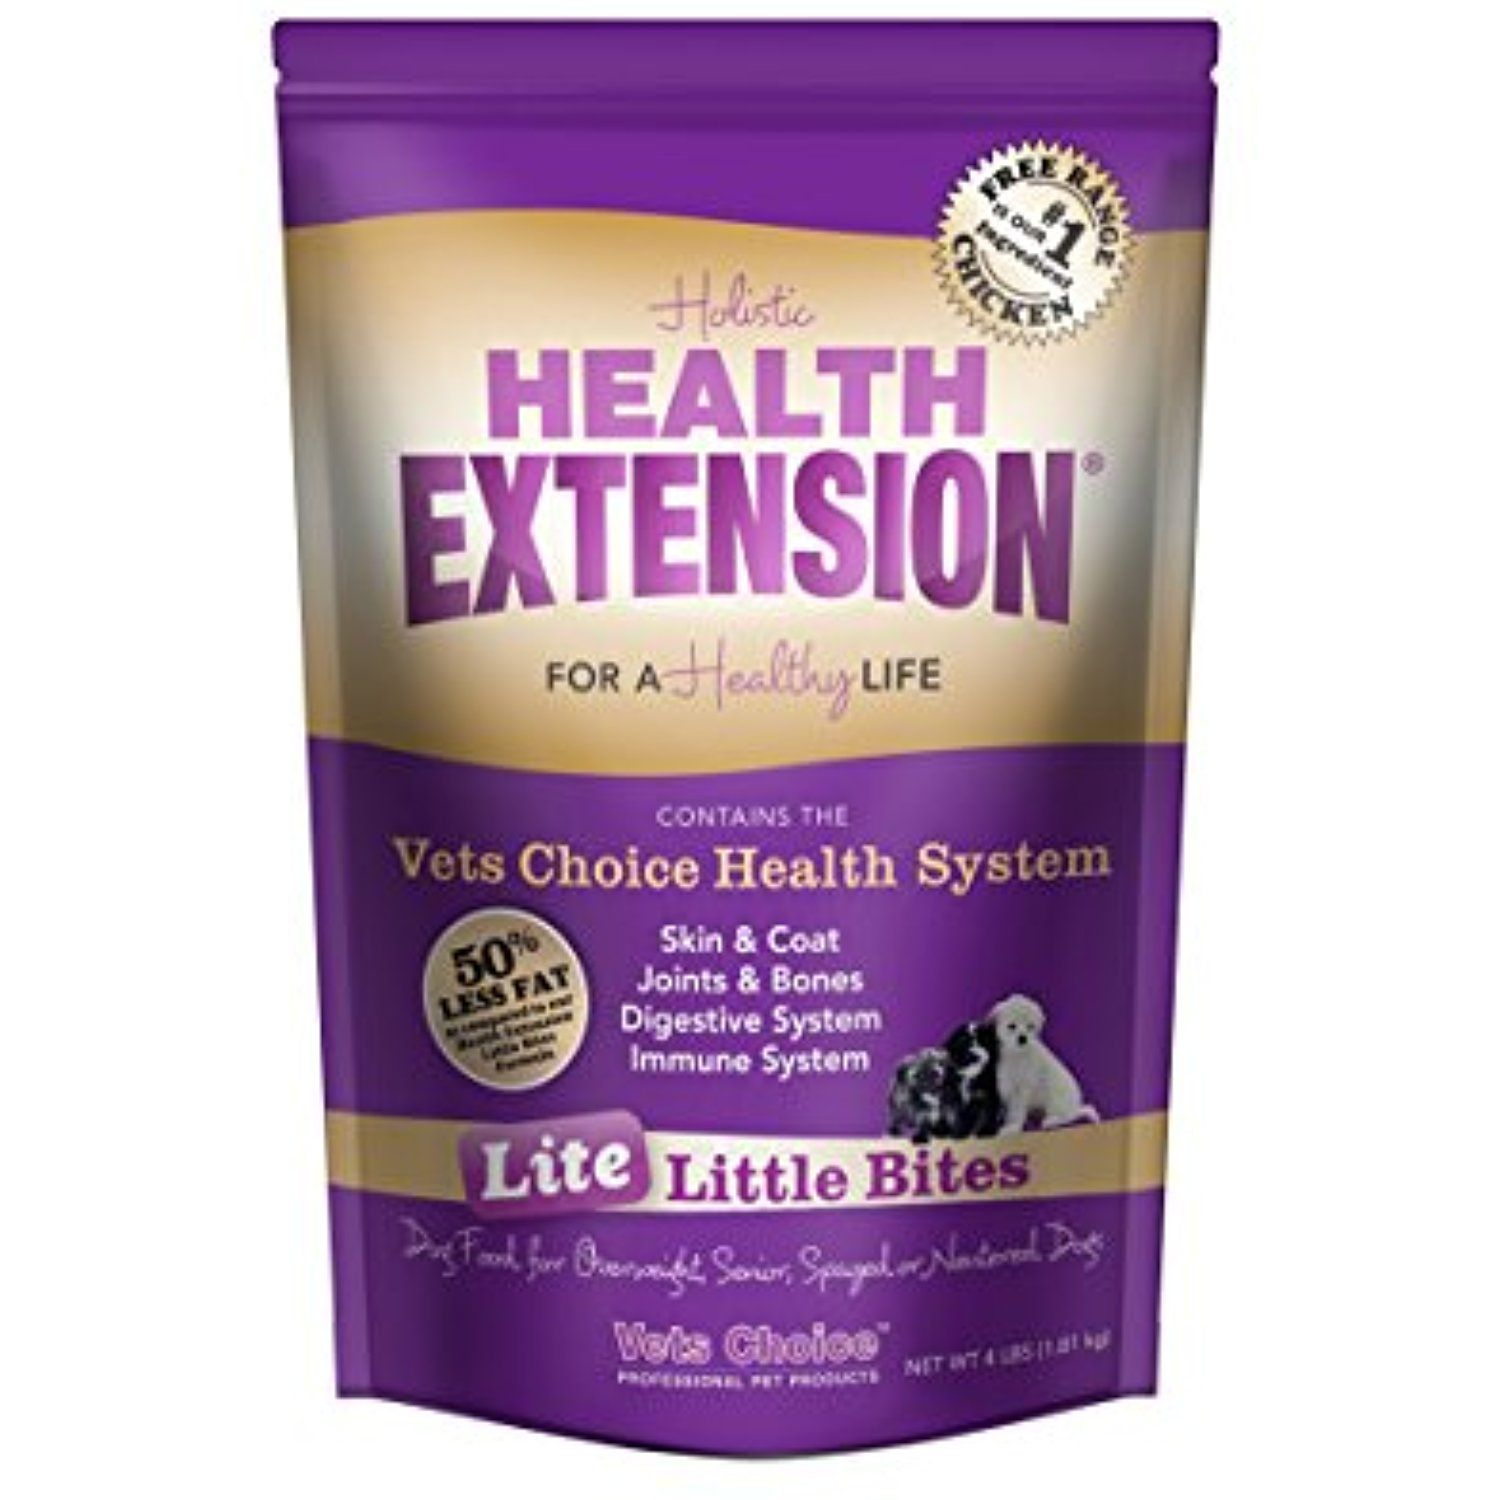 Health Extension Lite Little Bites 10 Pound The Details Can Be Found By Clicking On The Image This Is An A Dog Food Recipes Senior Dog Food Recipes Health